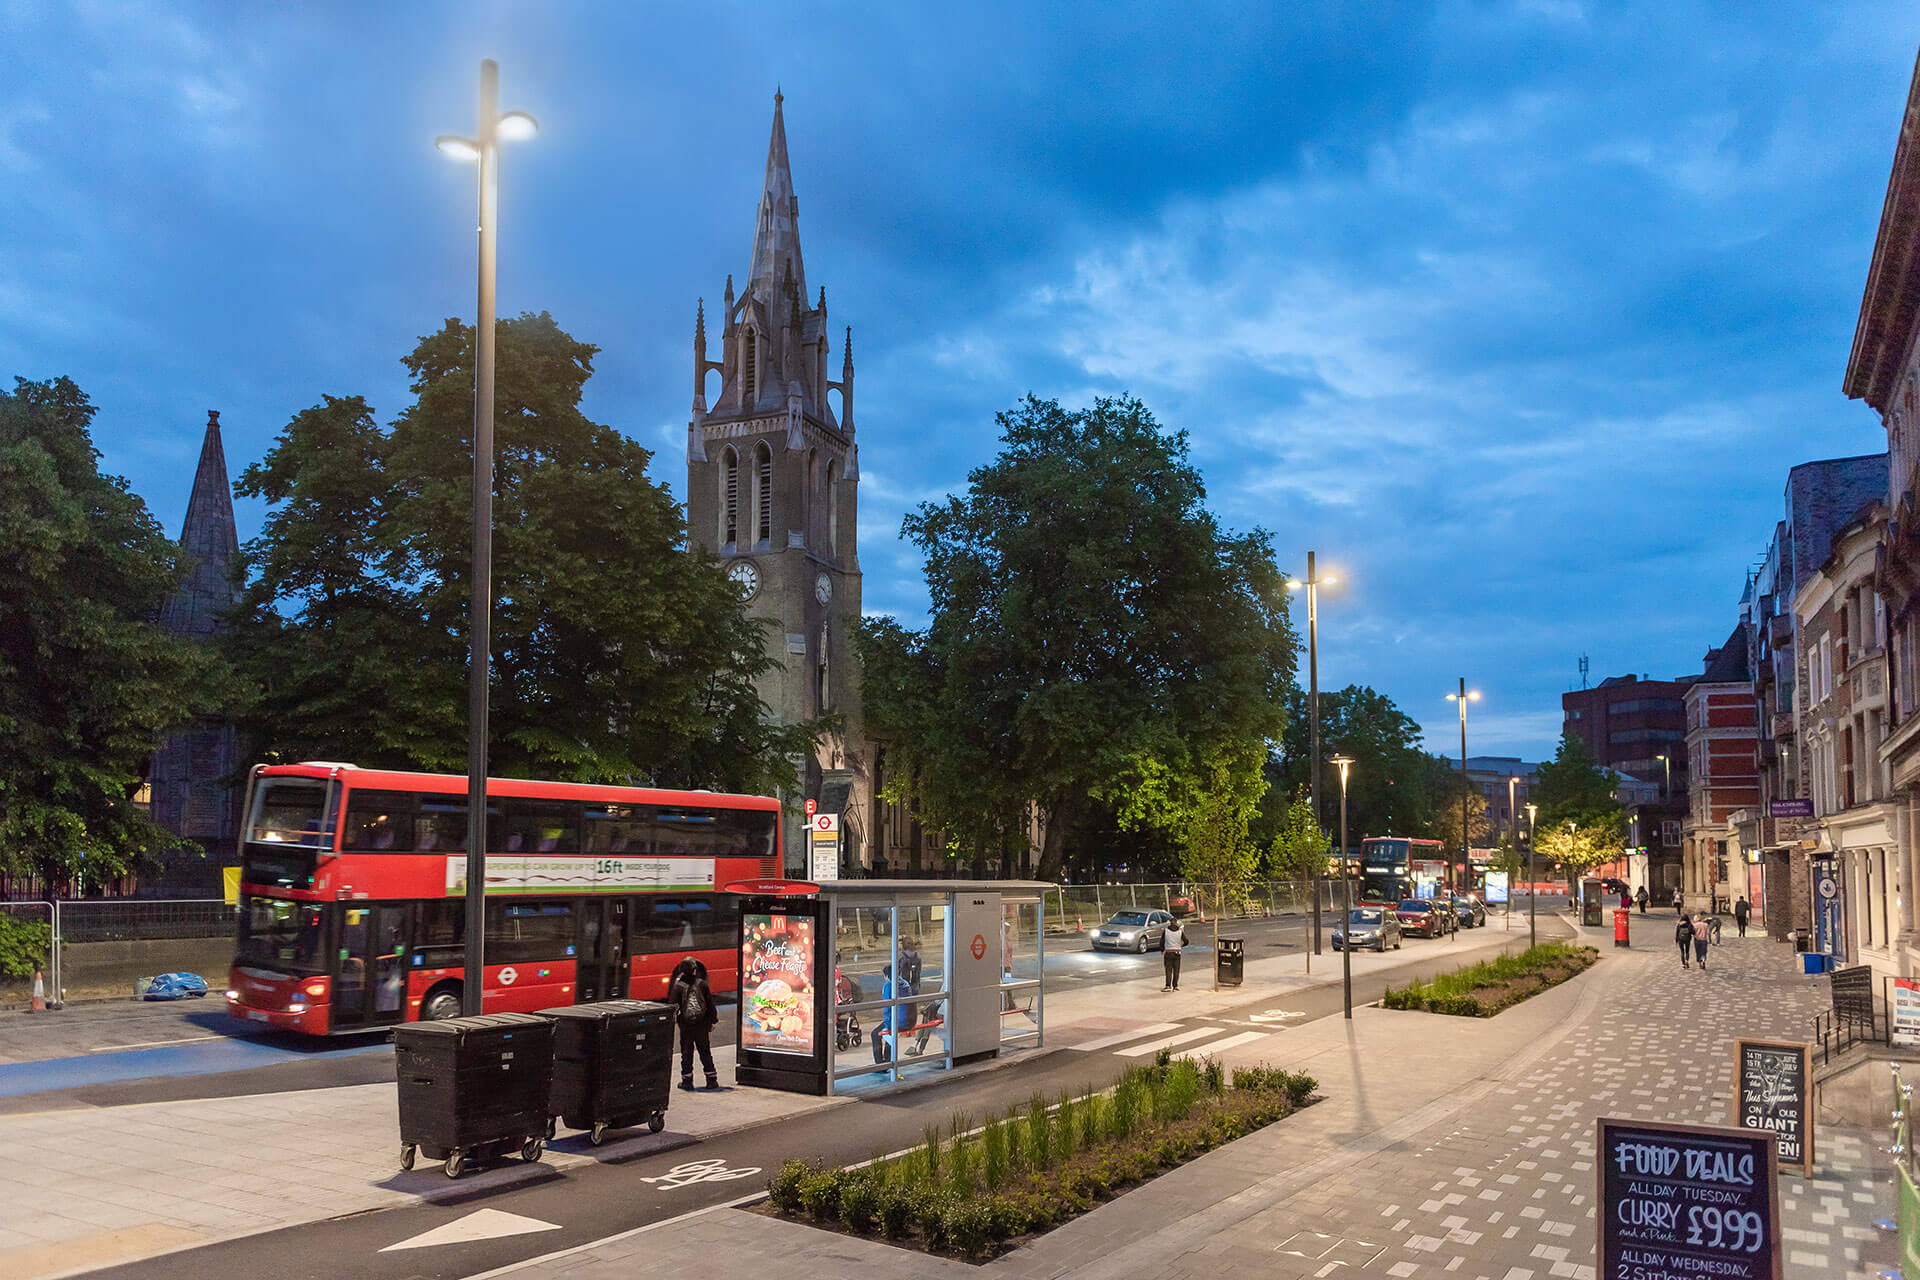 Yoa street light deliver energy-efficient upgrade for Stratford